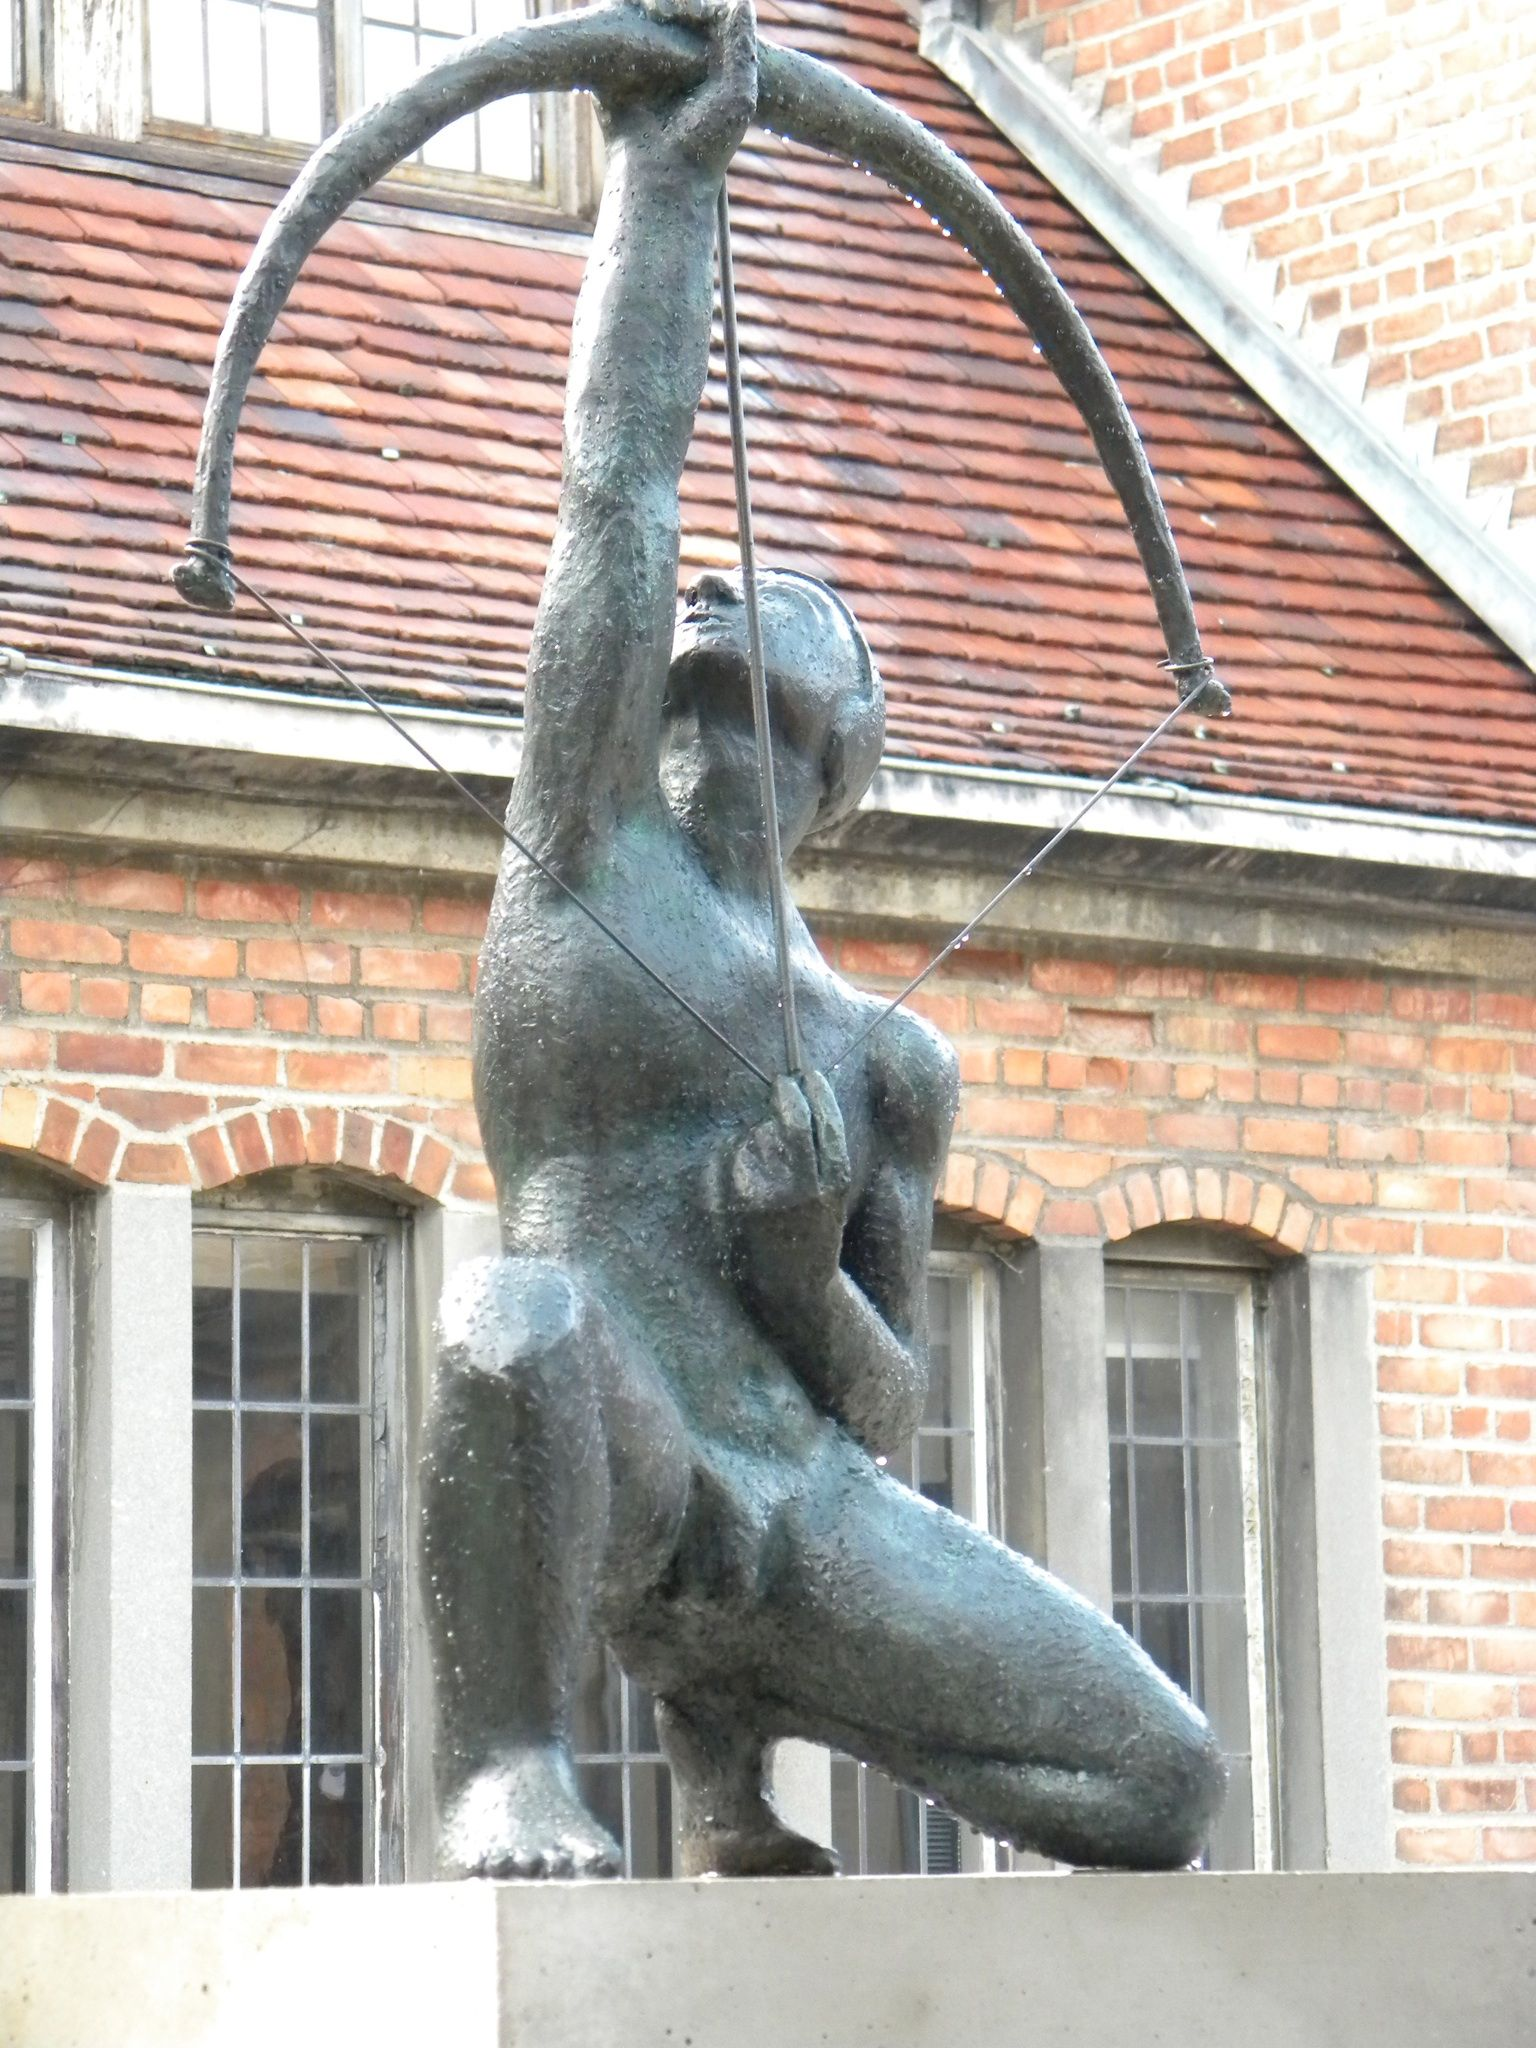 Pin by Dolores Lawrence on Cranbrook Kingswood Sculpture